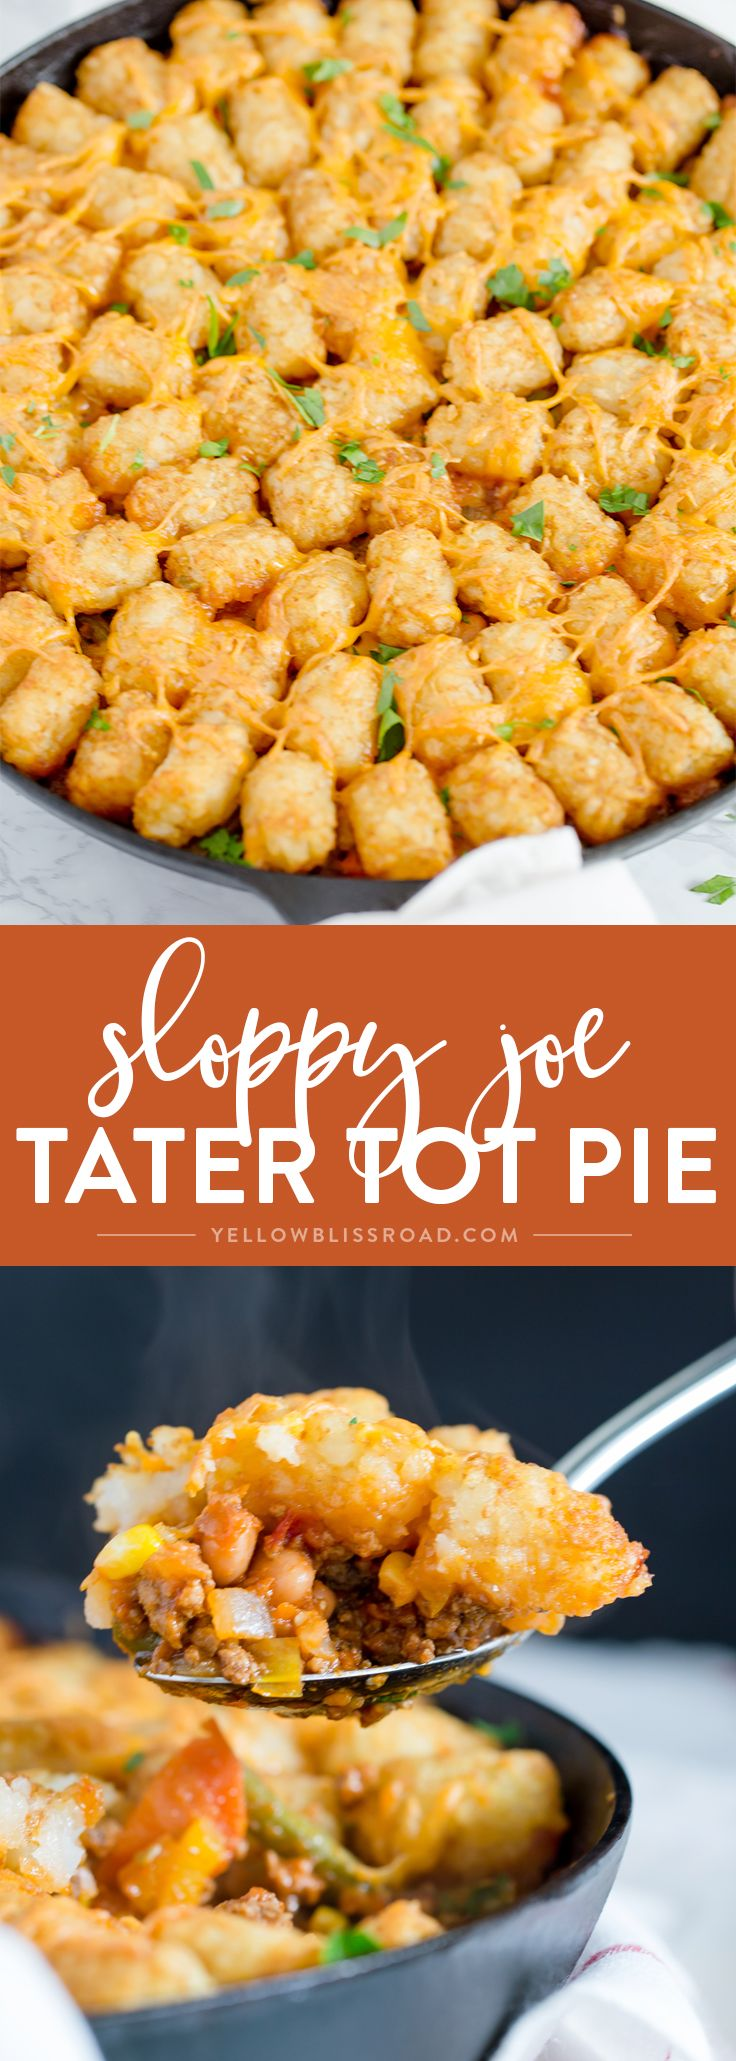 Sloppy Joe Tater Tot Pie is an easy one pan weeknight meal full of beef, veggies and a bold Manwich sauce, with a crispy tater tot crust. #ad